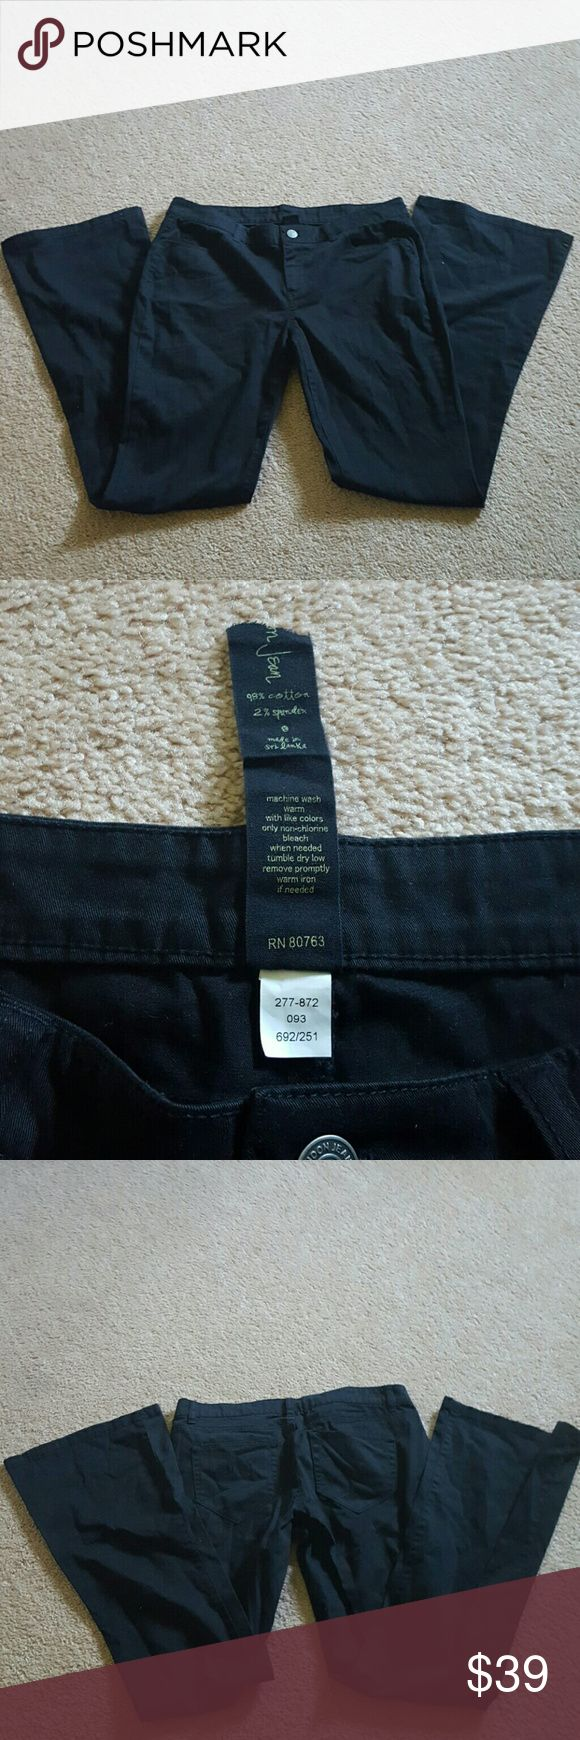 London Jeans Black Jeans Bootcut Flare Size 8 London Jeans Black Jeans Bootcut Flare Size 8. Like new. Tag cut as shown in picture. London Jeans Jeans Flare & Wide Leg